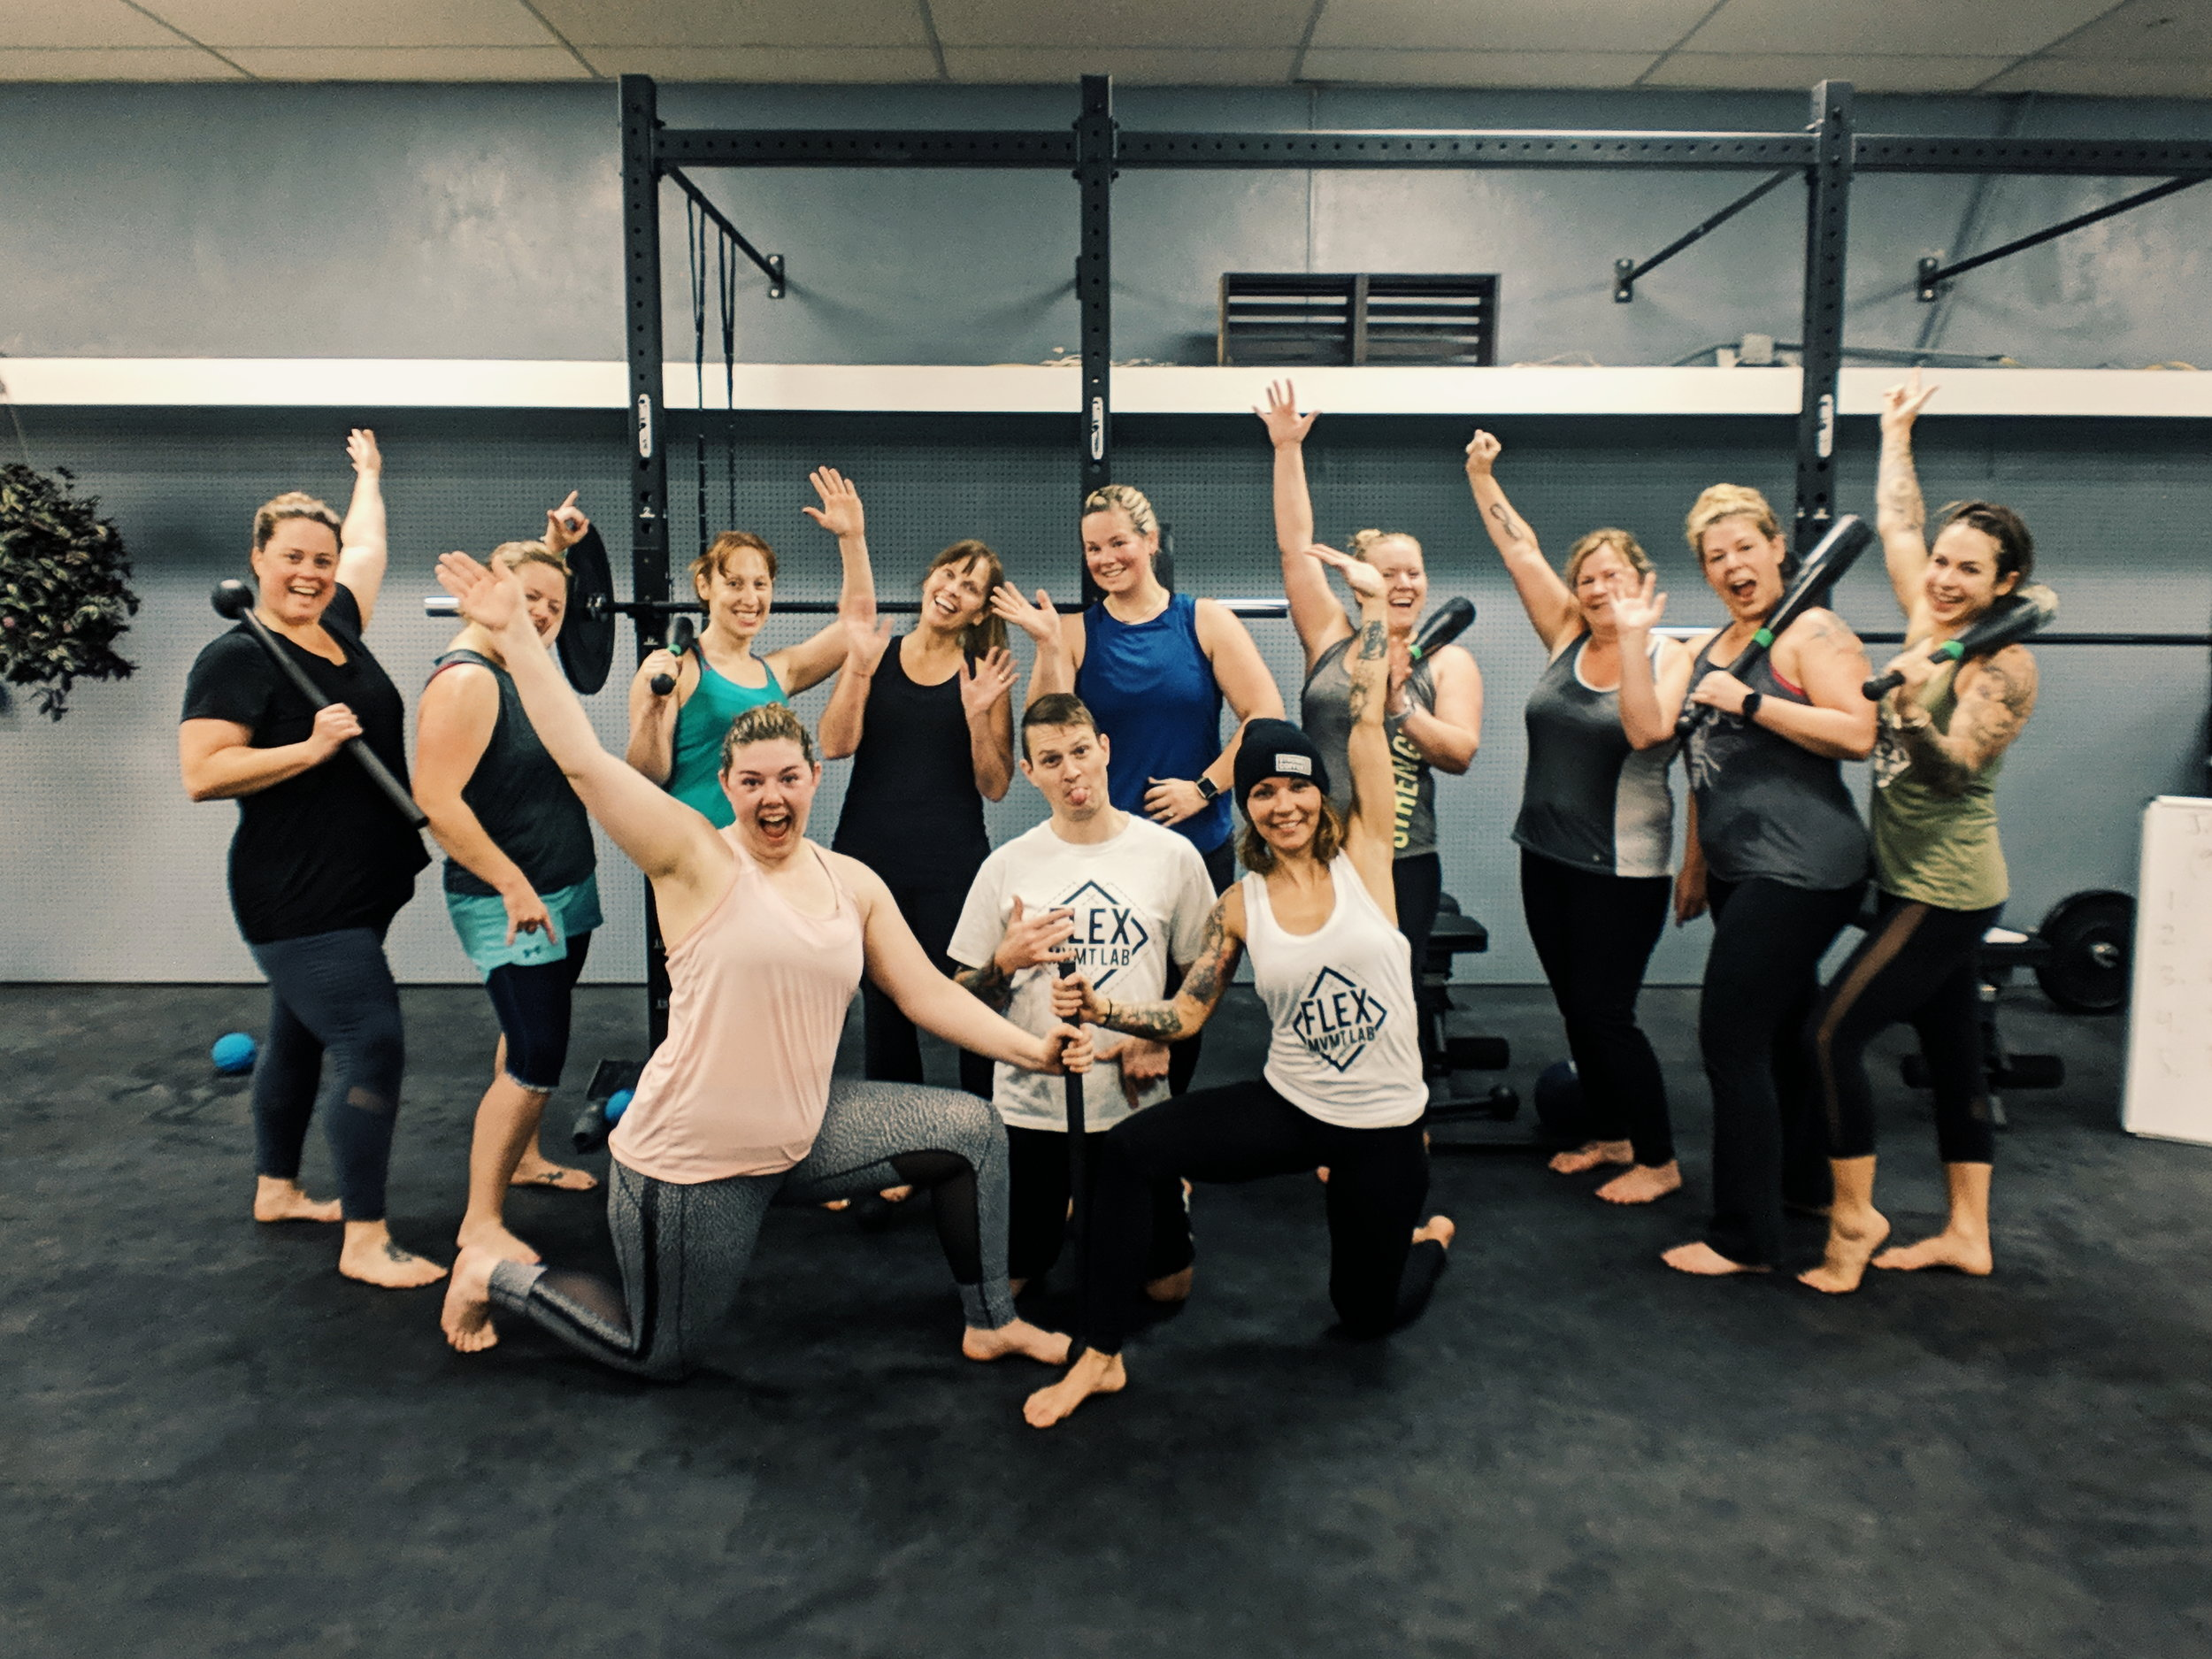 Jump in,grab on & #moveyourasana - New client special: 2 weeks unlimited for only $20.